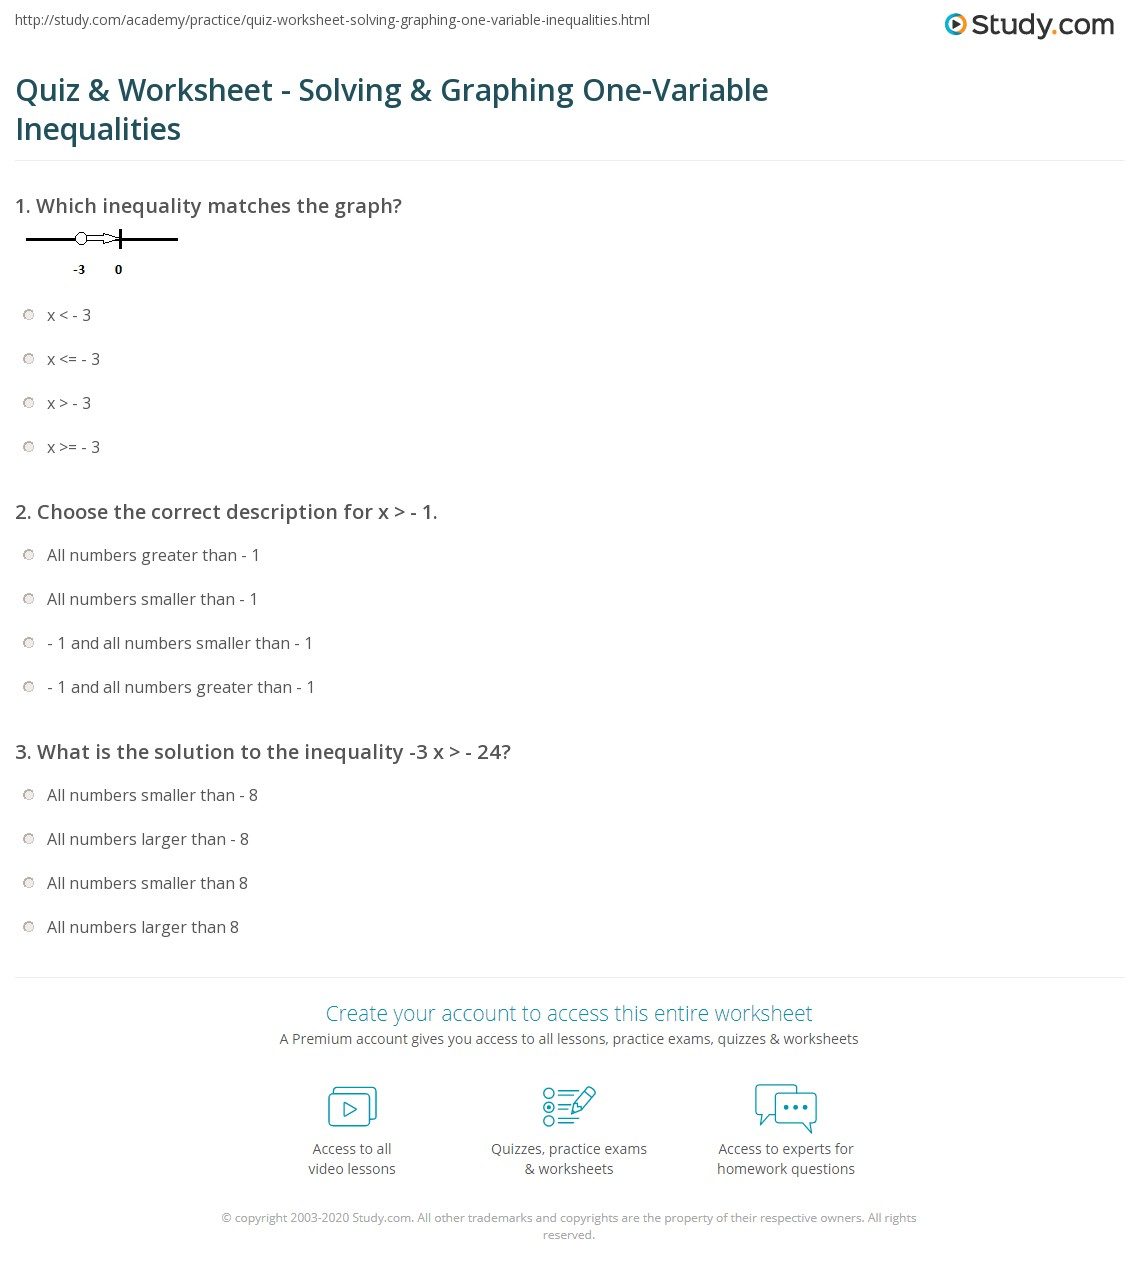 print how to solve and graph one variable inequalities worksheet - Solving And Graphing Inequalities Worksheet